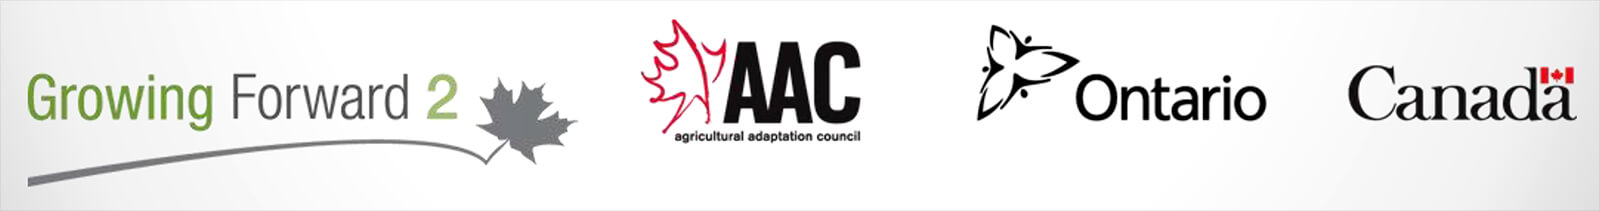 Growing Forward 2, Agricultural Adaptation Council (AAC), Government of Ontario and Government of Canada